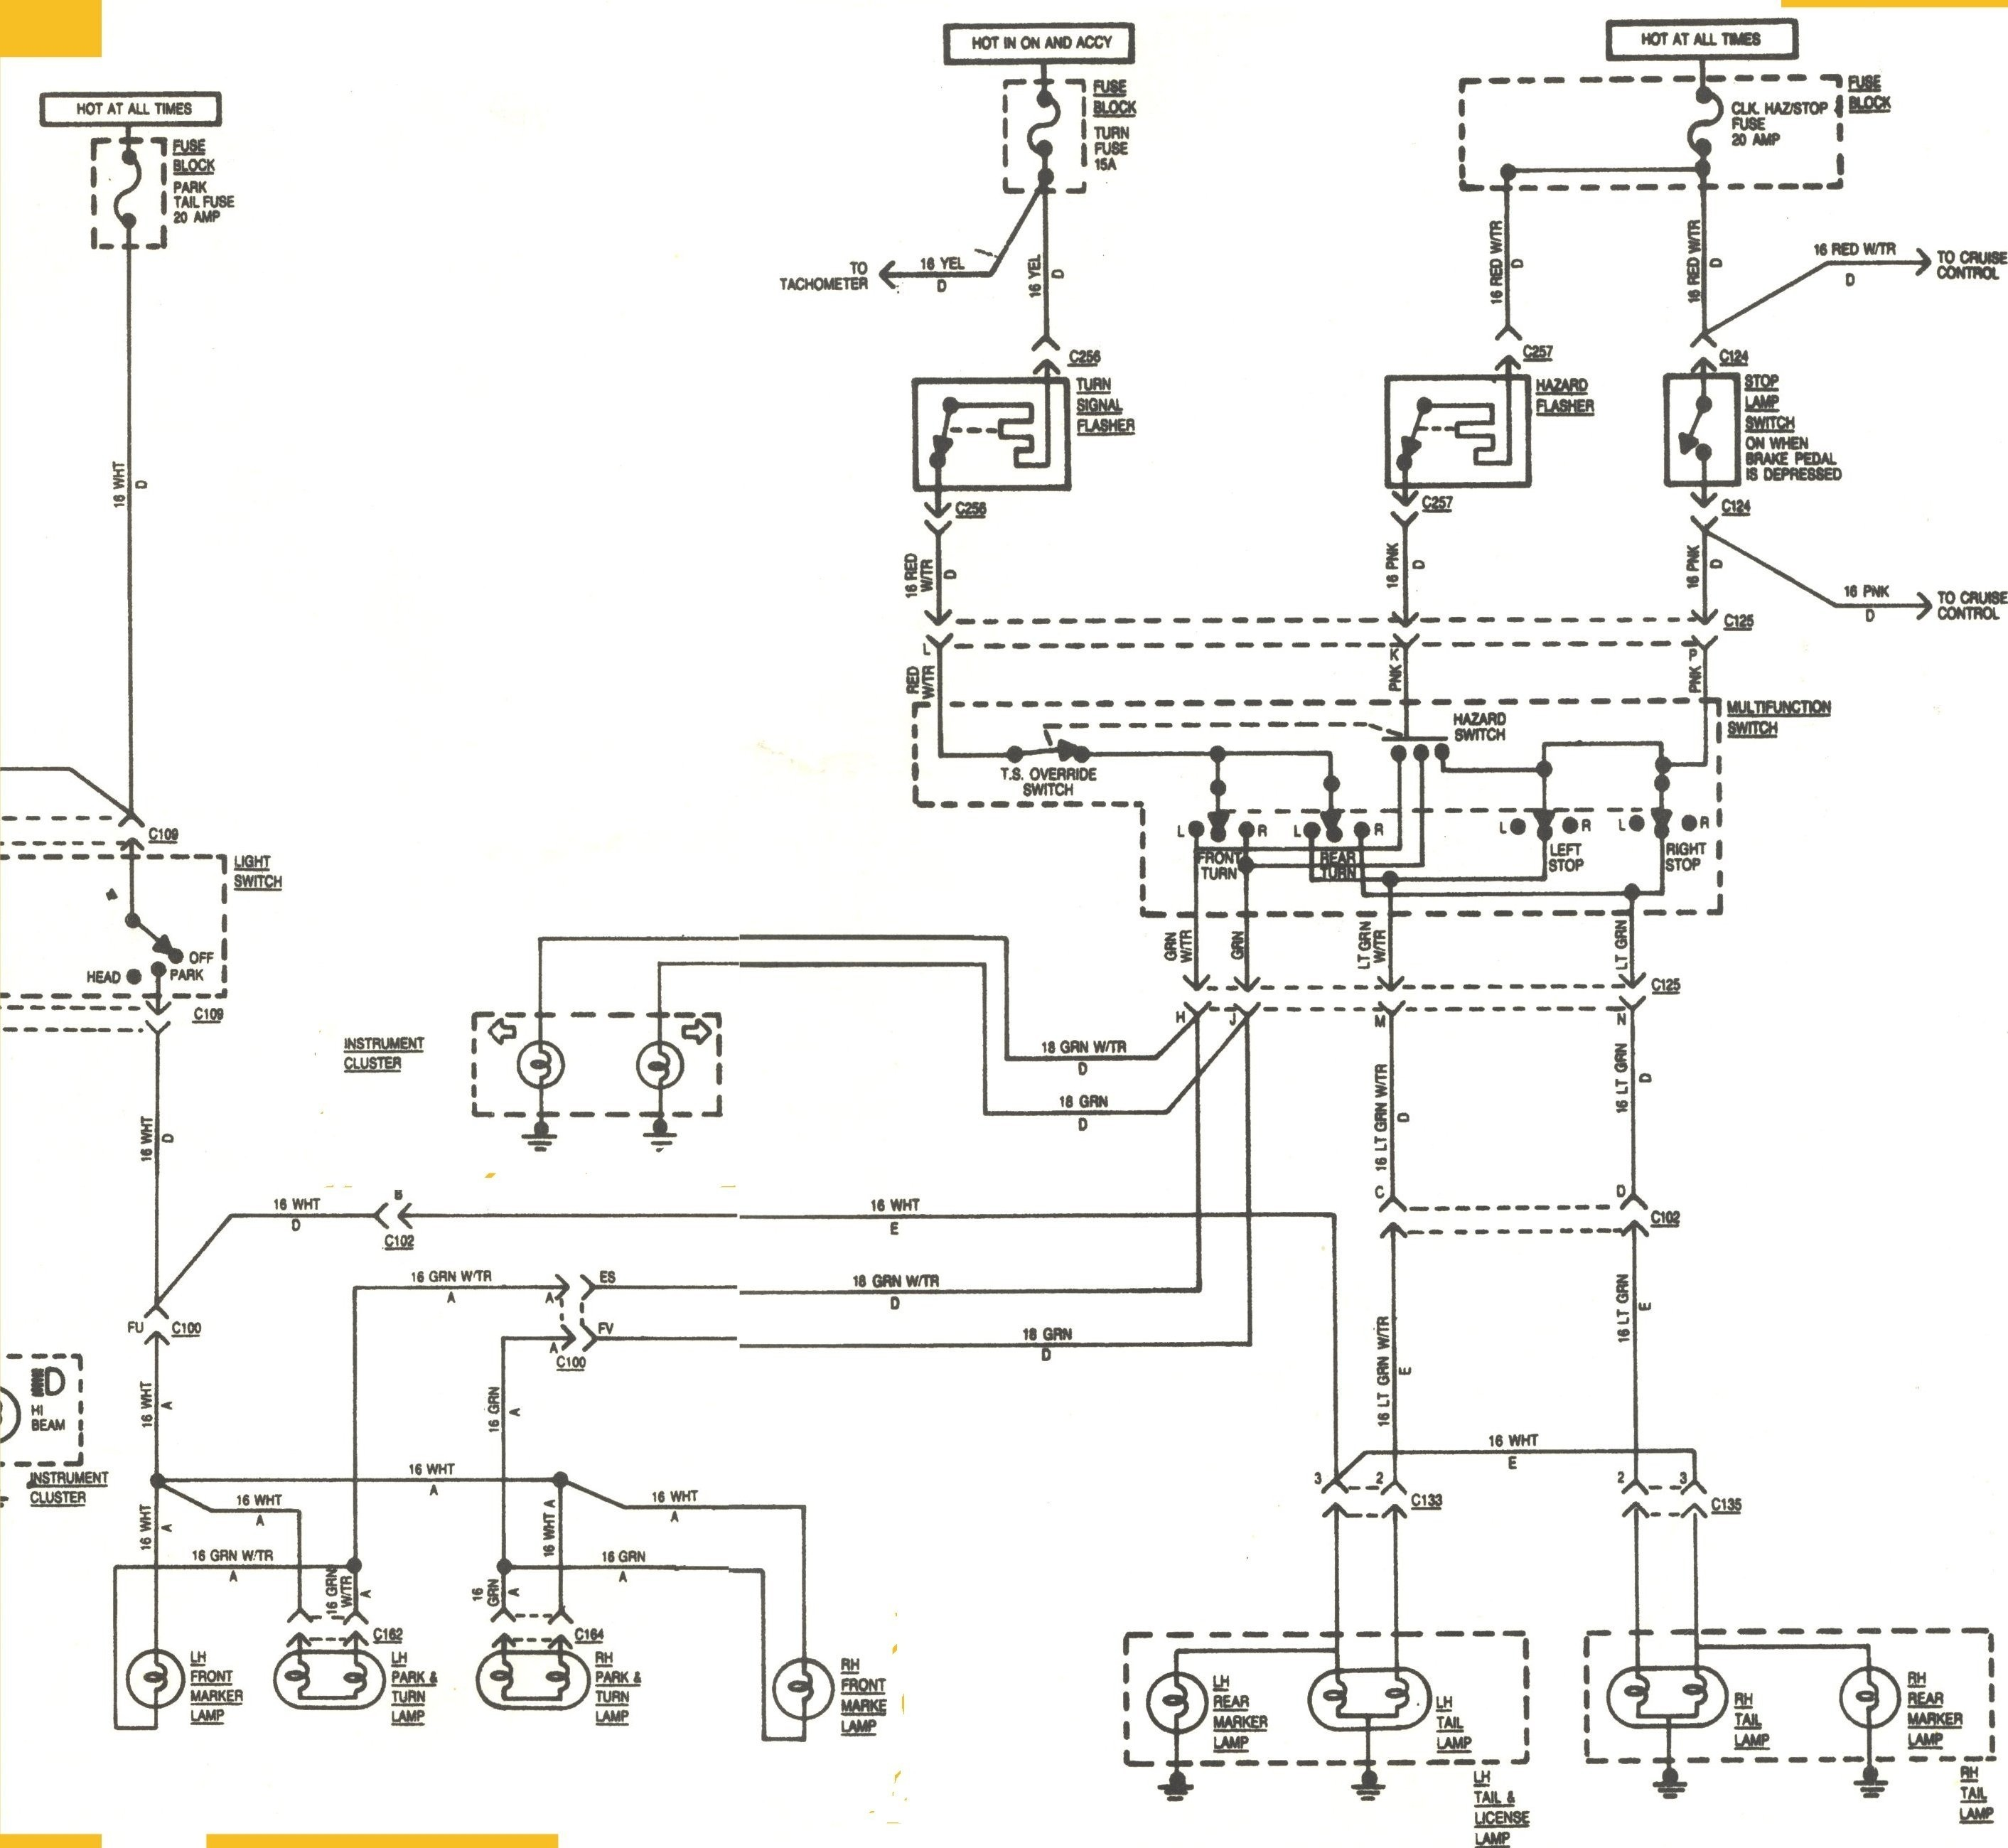 Turn Signal Circuit Diagram Awesome Turn Signal Switch Wiring Diagram Ideas Everything You Of Turn Signal Circuit Diagram